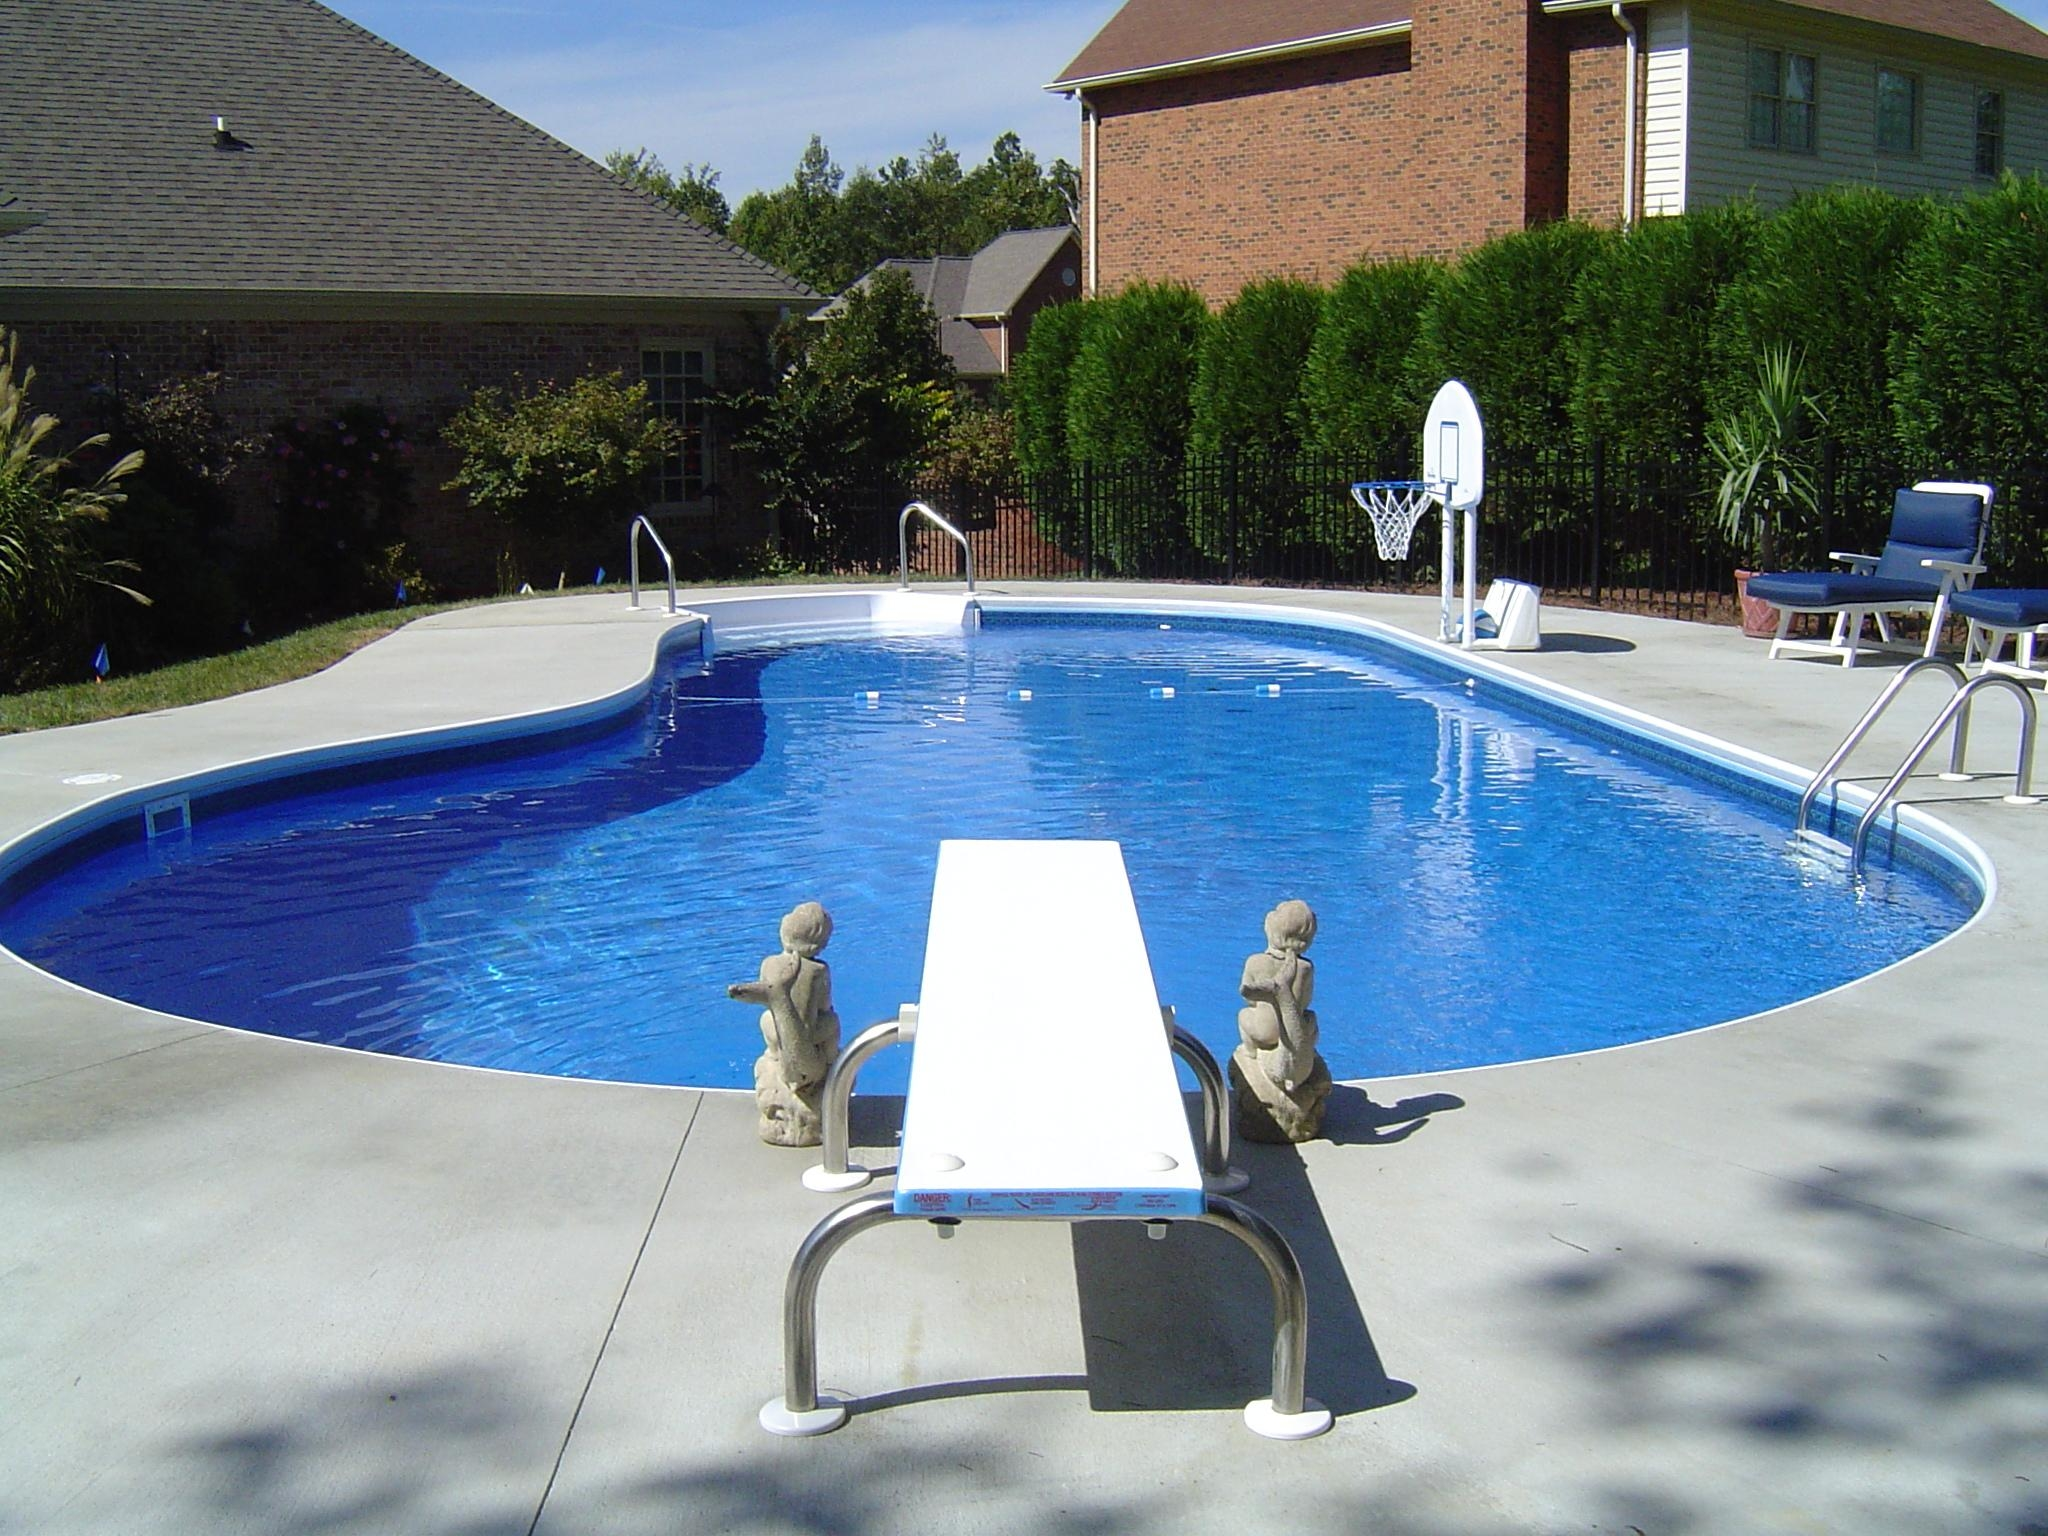 Holiday pools of winston salem inc 5730 country club rd for Swimming pool dealers